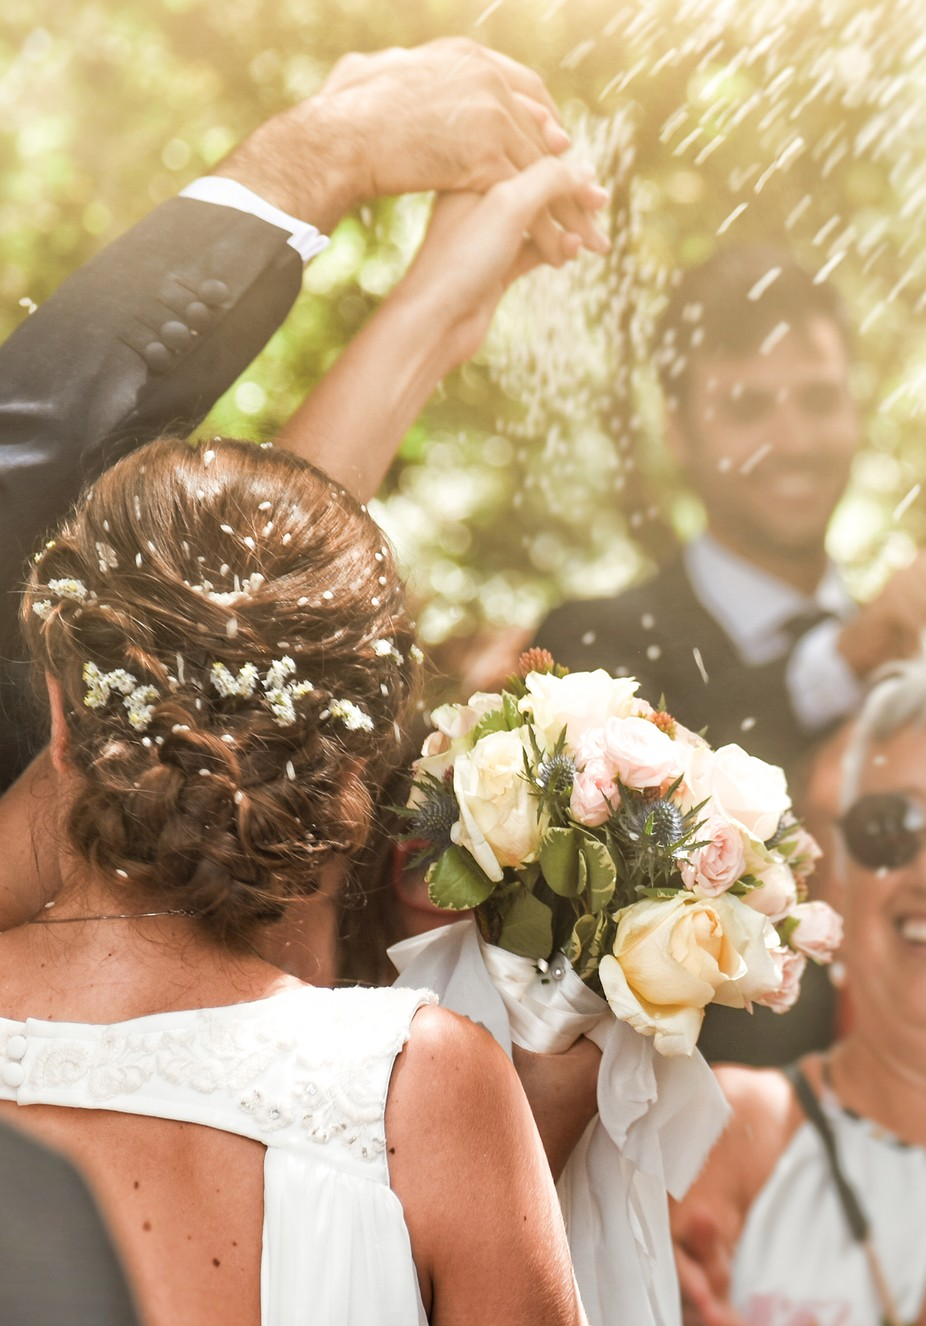 That moment! by albaem - All About The Wedding Photo Contest